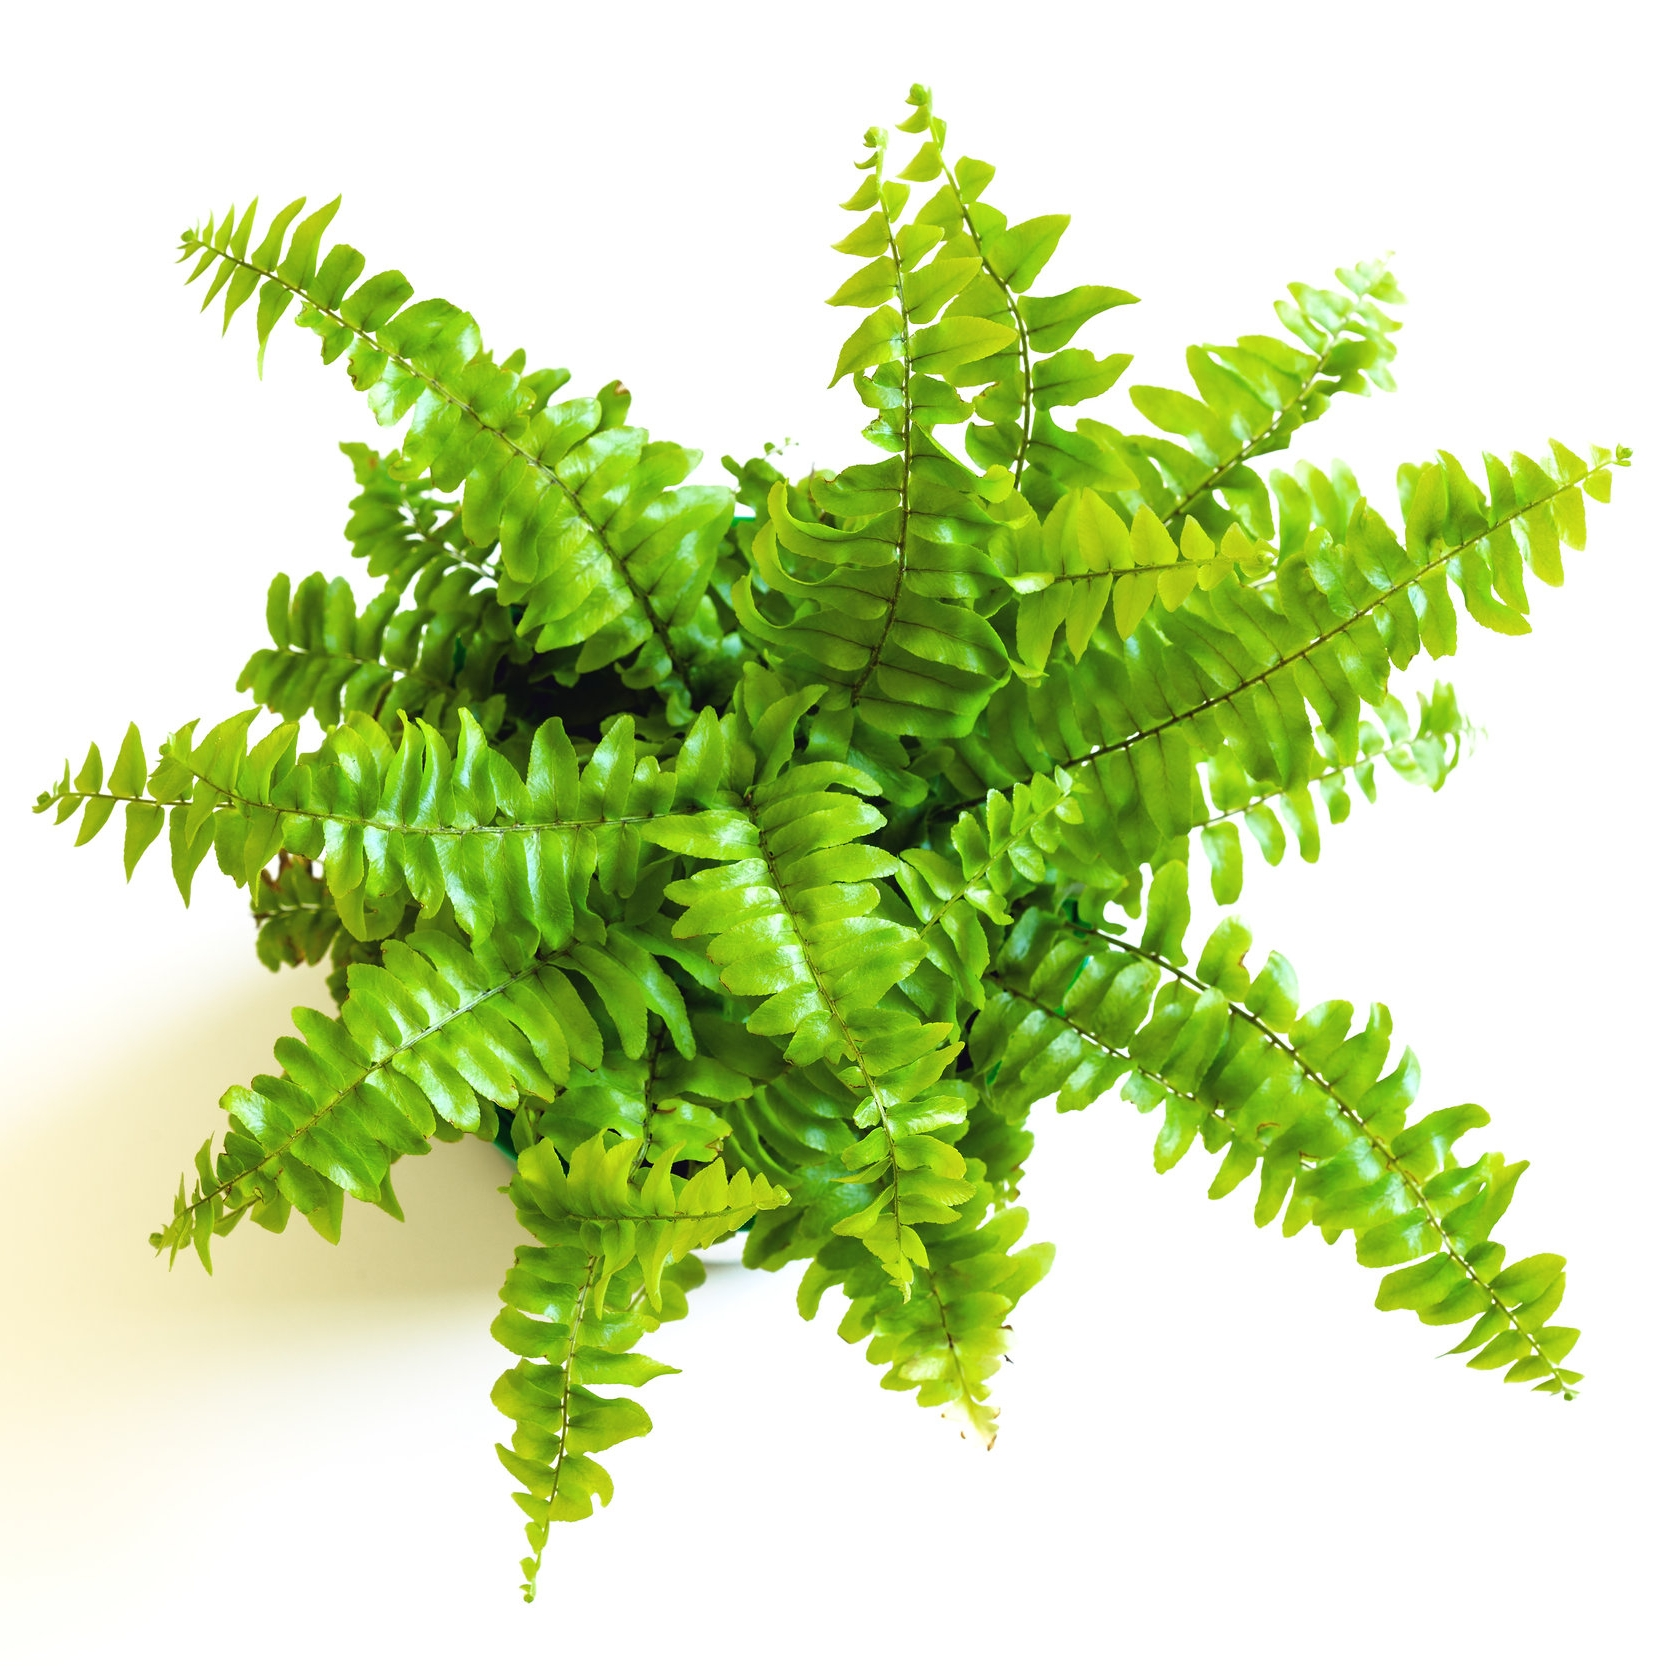 Nephrolepis in pot and foliage on white background (closeup)